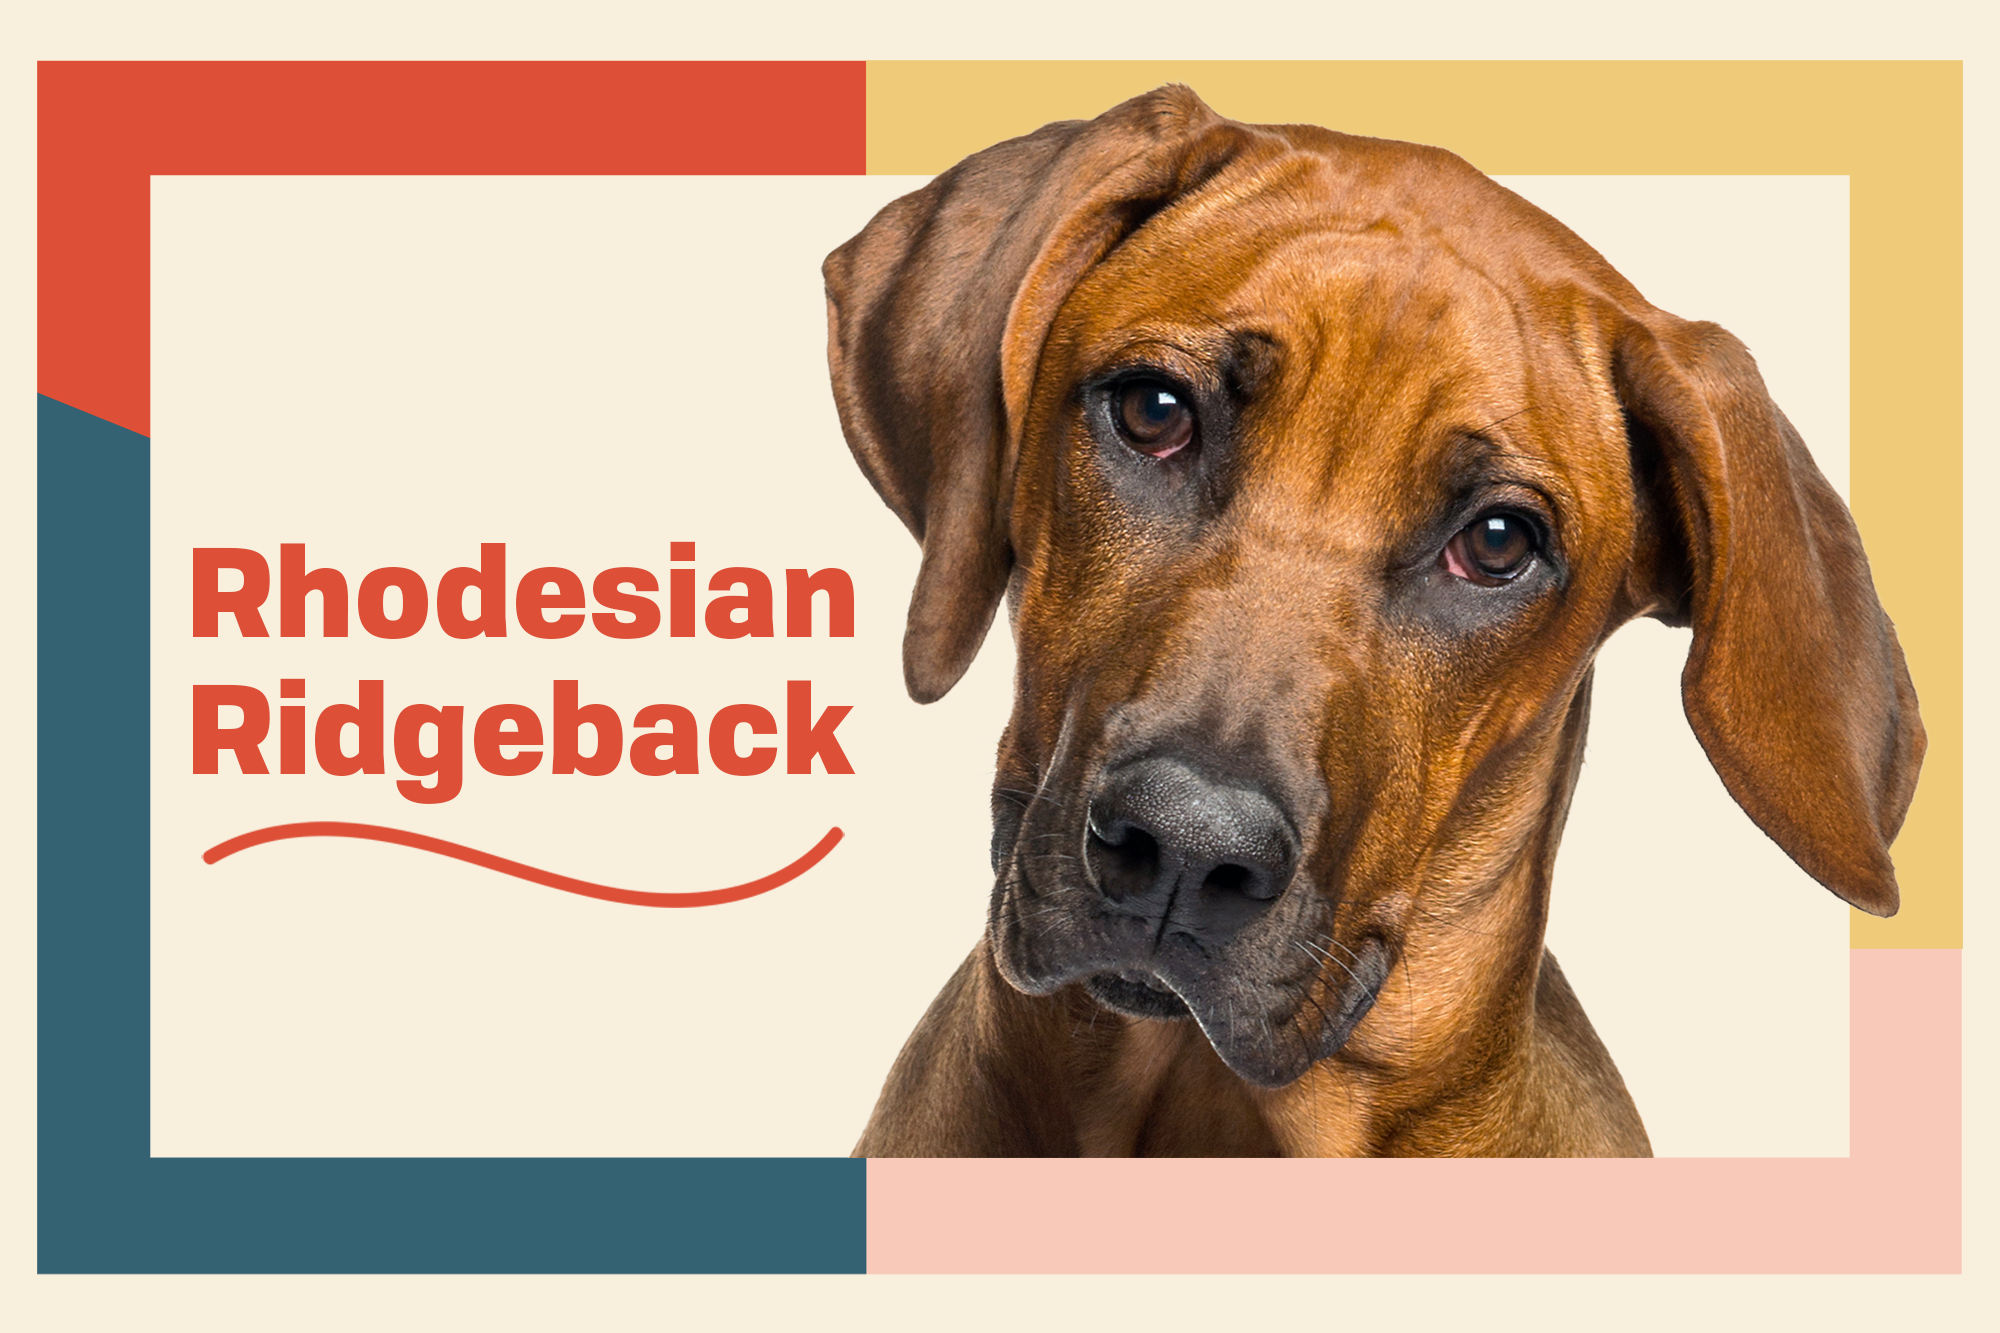 Rhodesian Ridgeback Breed Photo